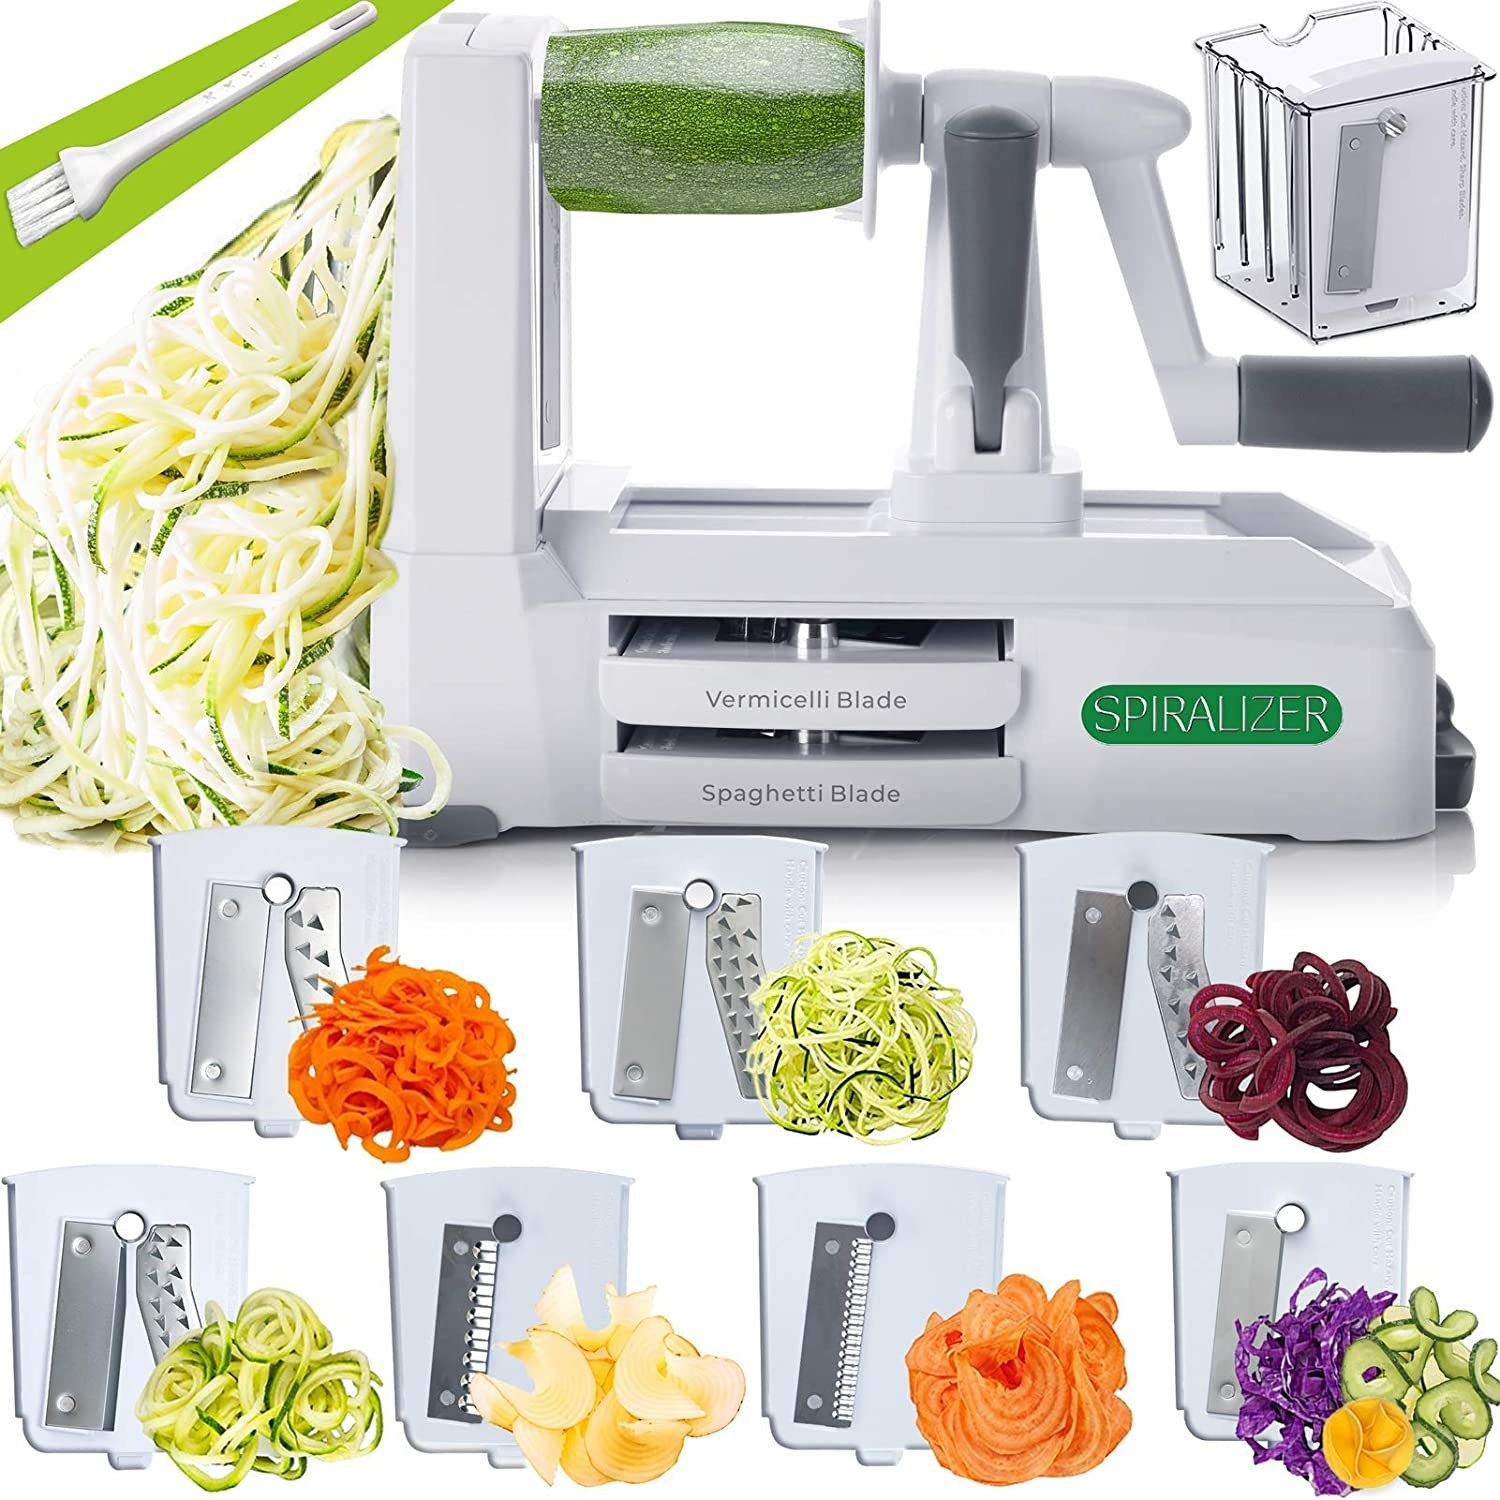 The spiralizer with 7-blade slicers is capable of cutting a variety of vegetables